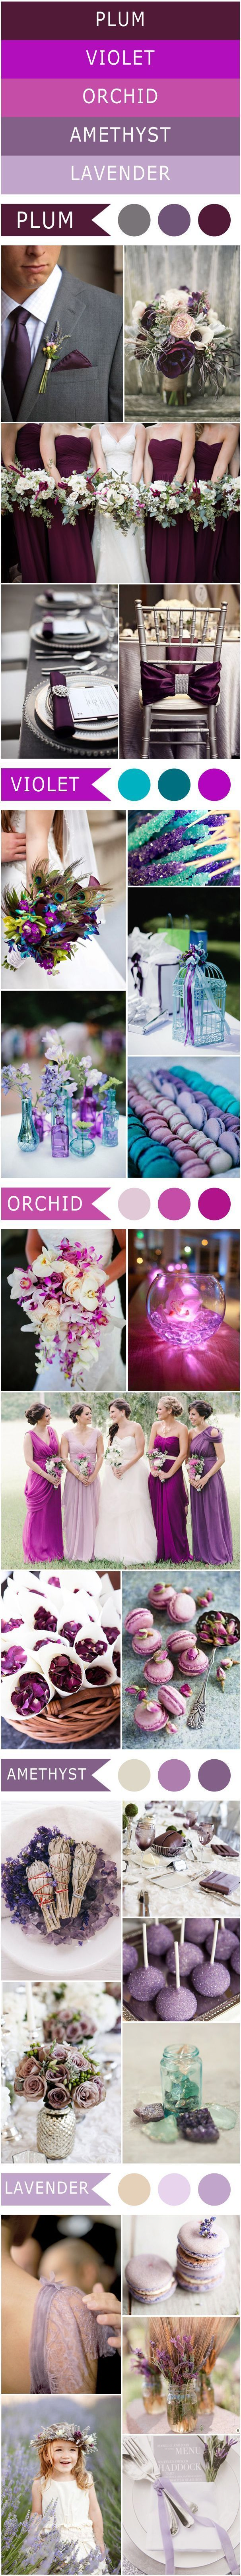 Different Shades of Purple Wedding Color Ideas-Plum, Violet, Orchid, Amethyst, Lavender